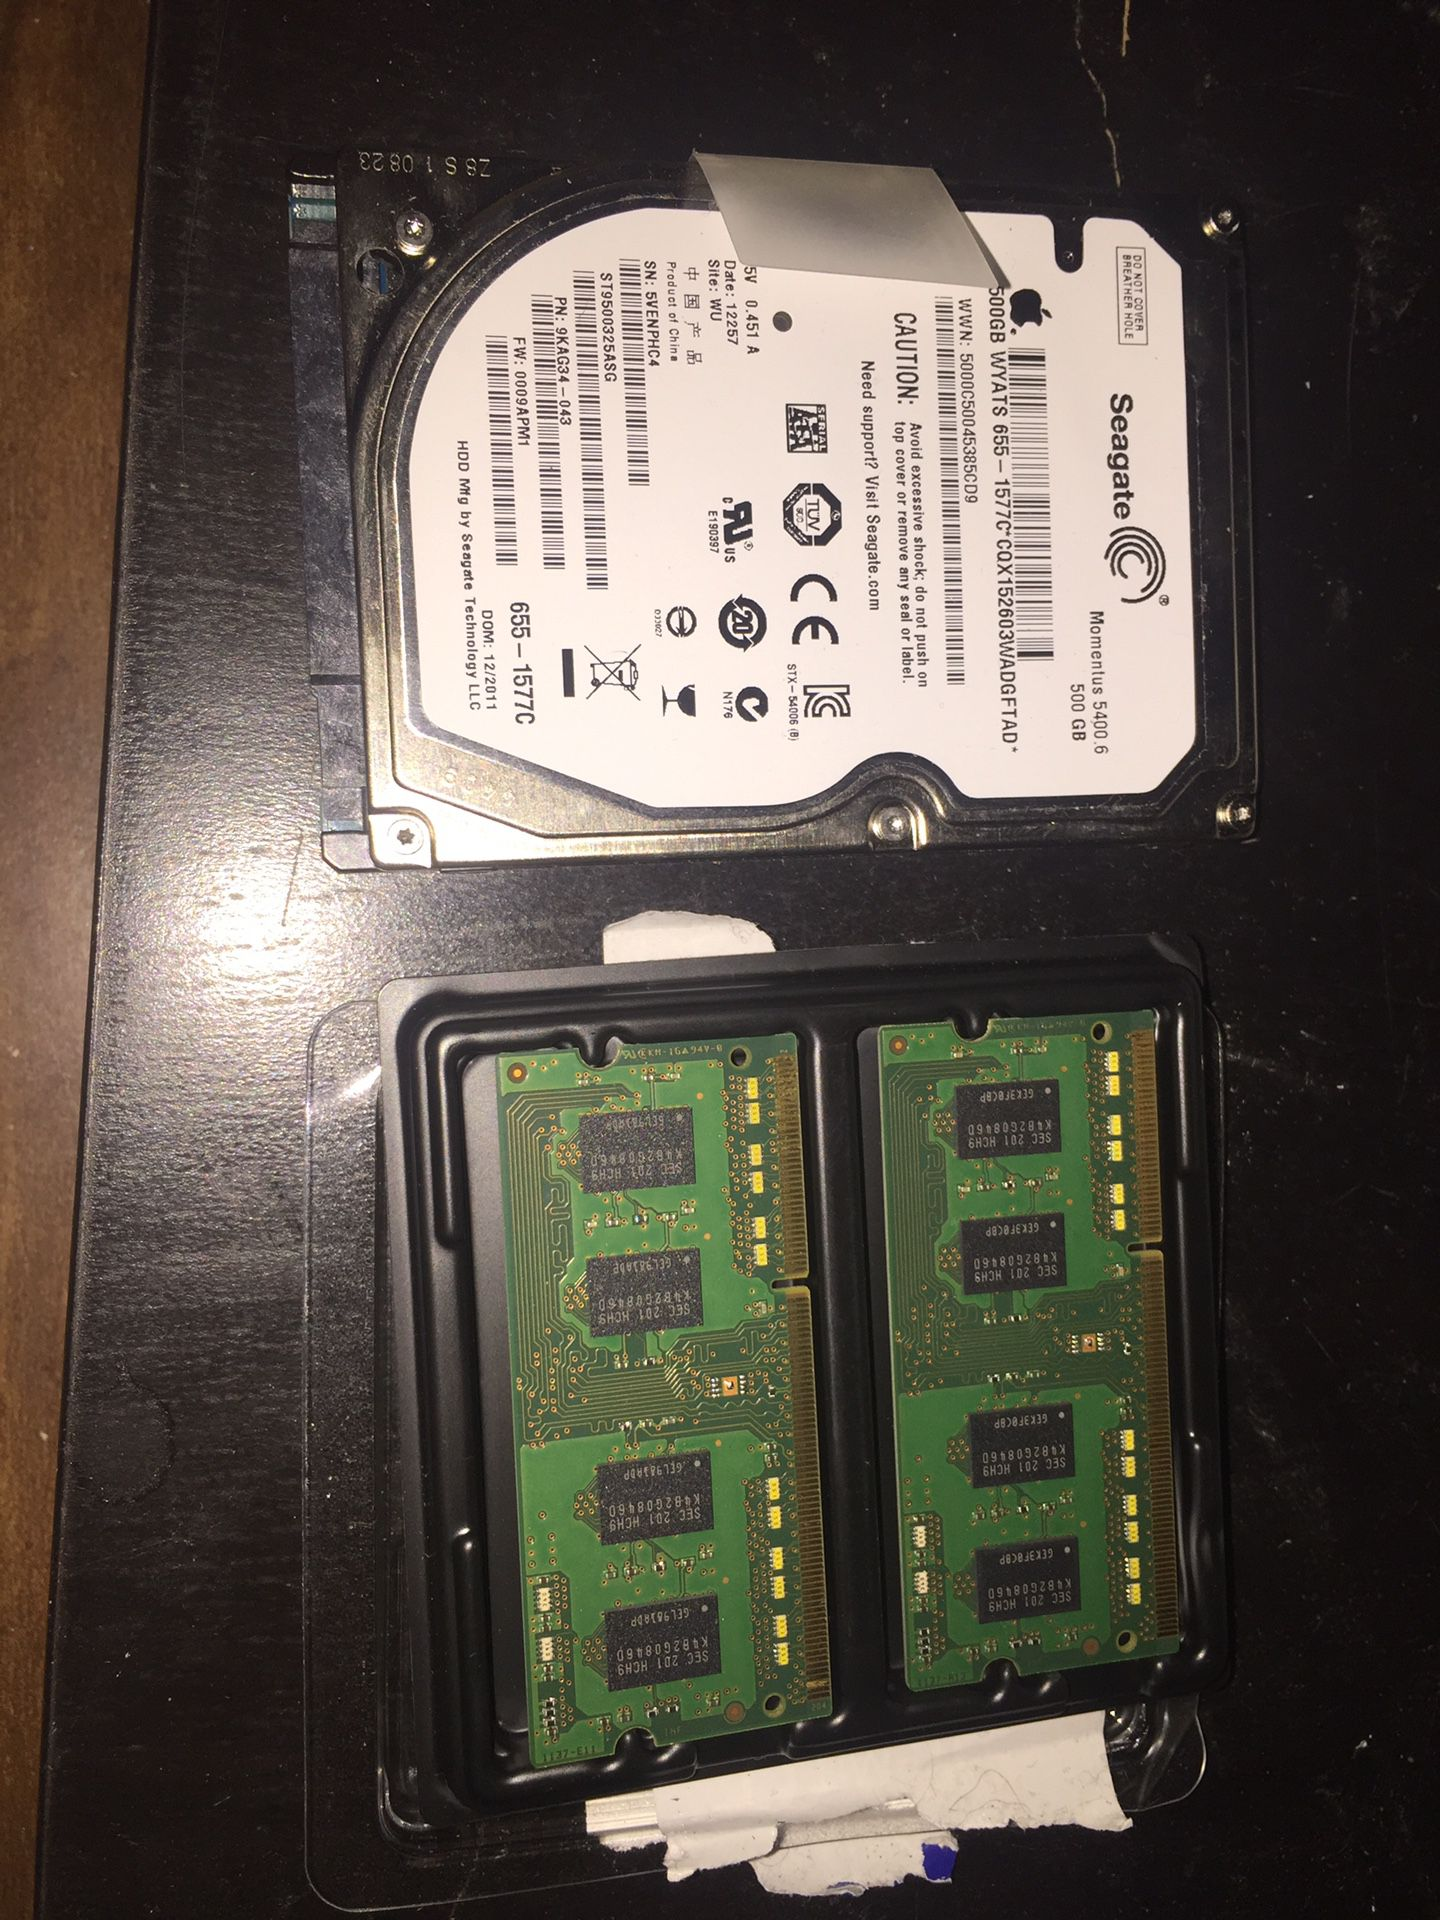 500 gb hard drive and 4gb ram from 2011 MacBook Pro